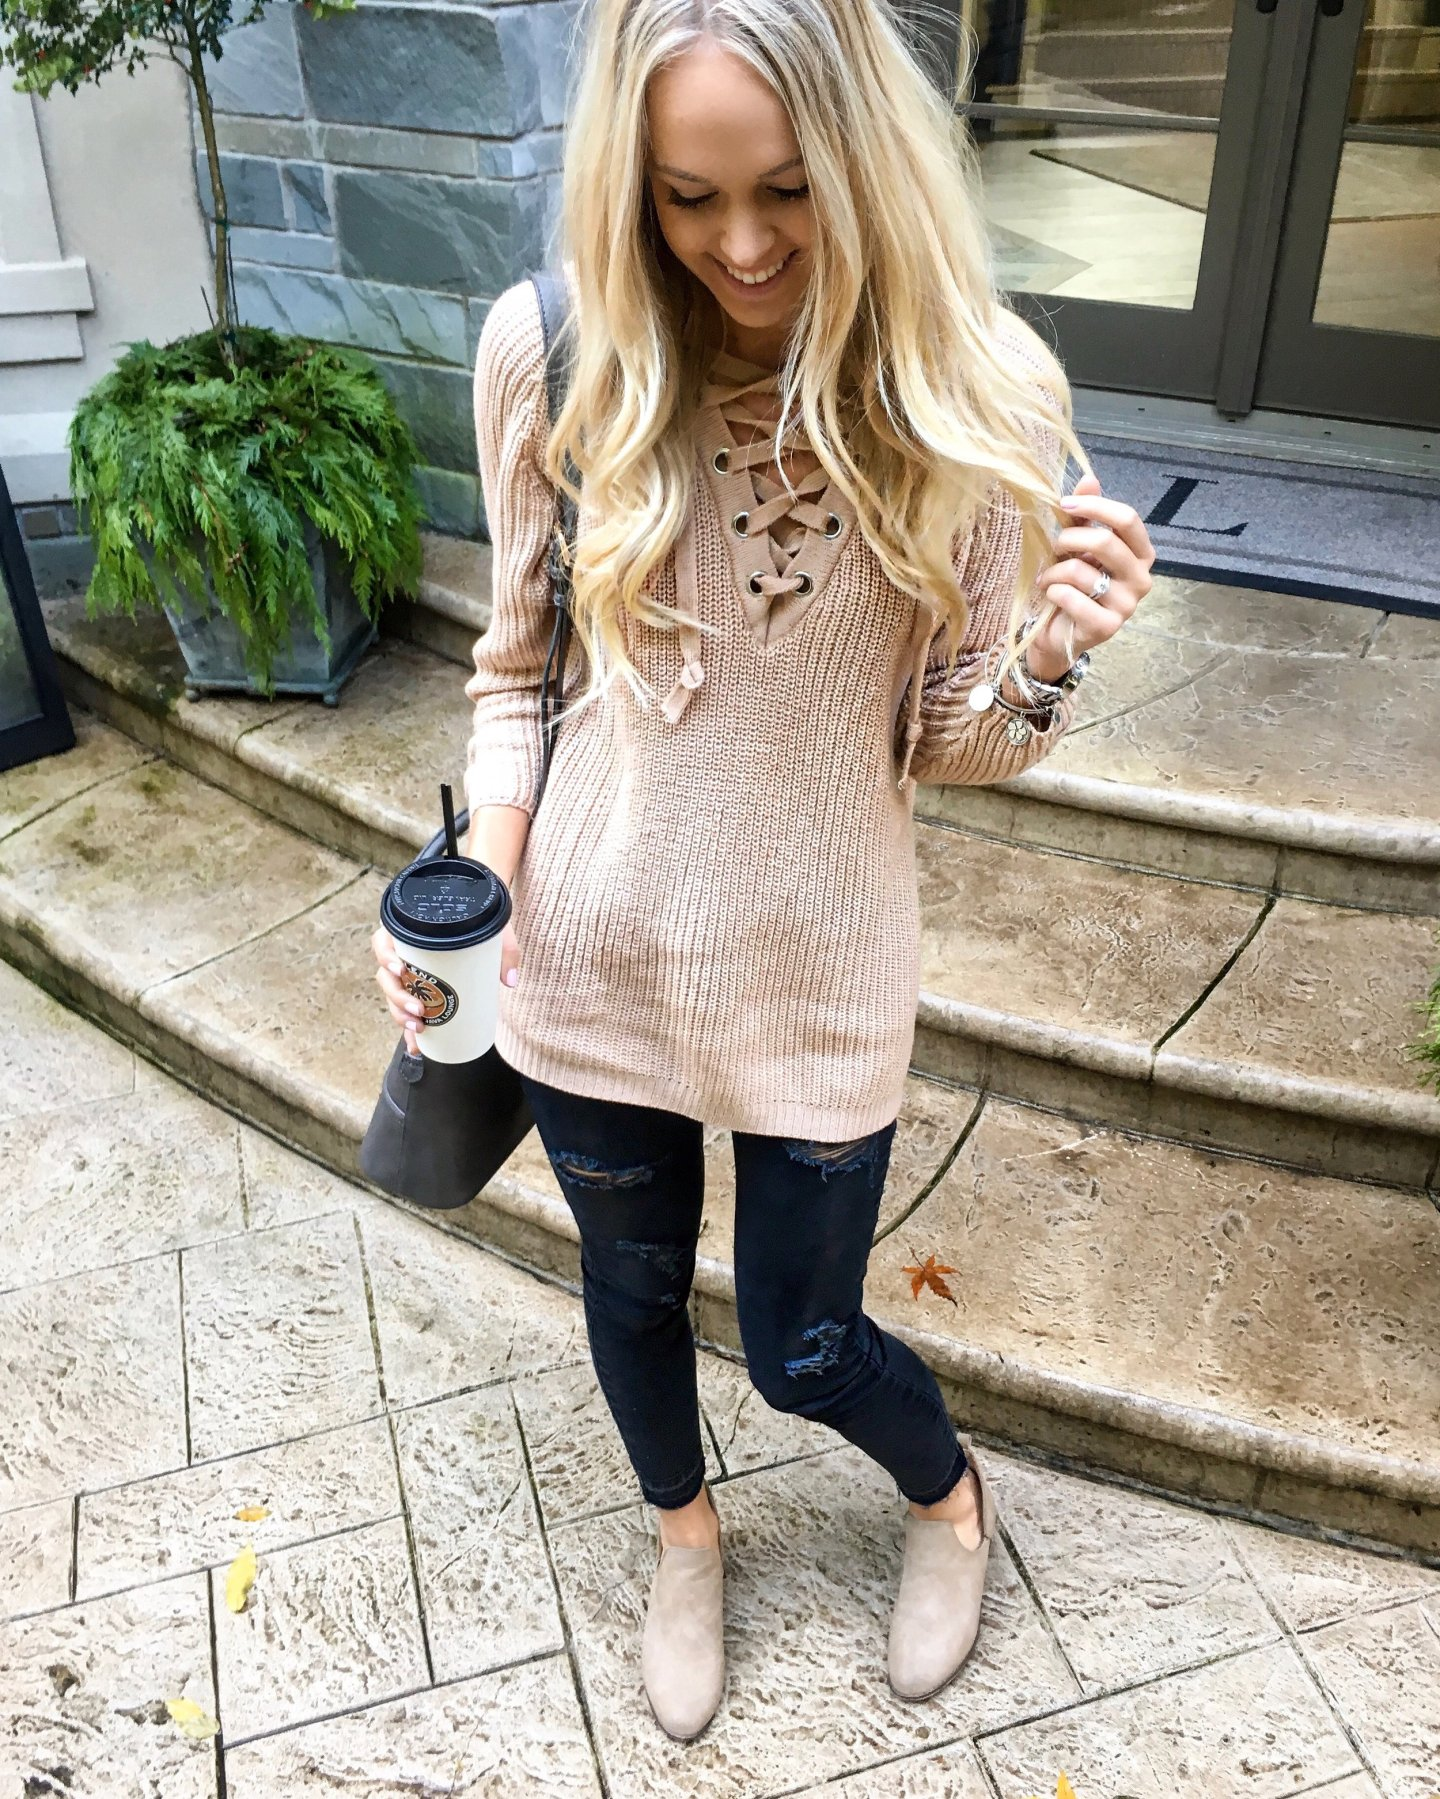 Sweater | Pants | Similar booties here & here  | Purse | Bracelets here & here | Watch